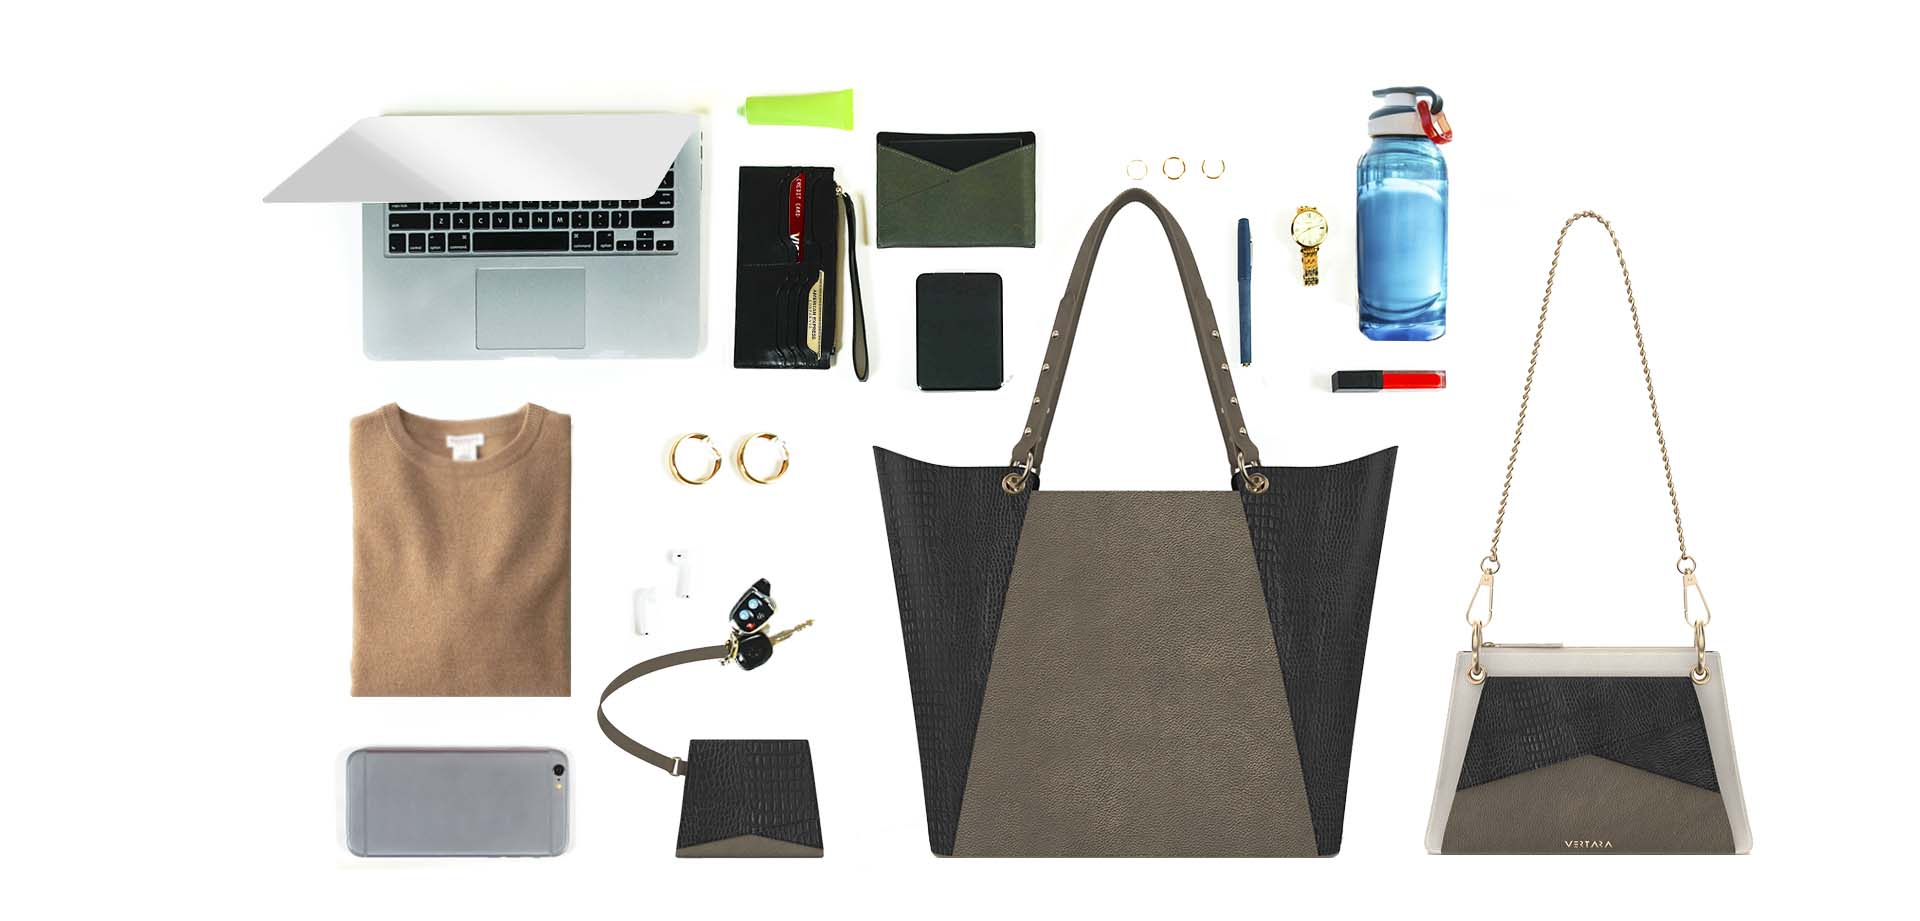 Verve Convertible Leather Backpack, Tote & Purse fits in Volt laptop sleeve, omni wallet & passport case